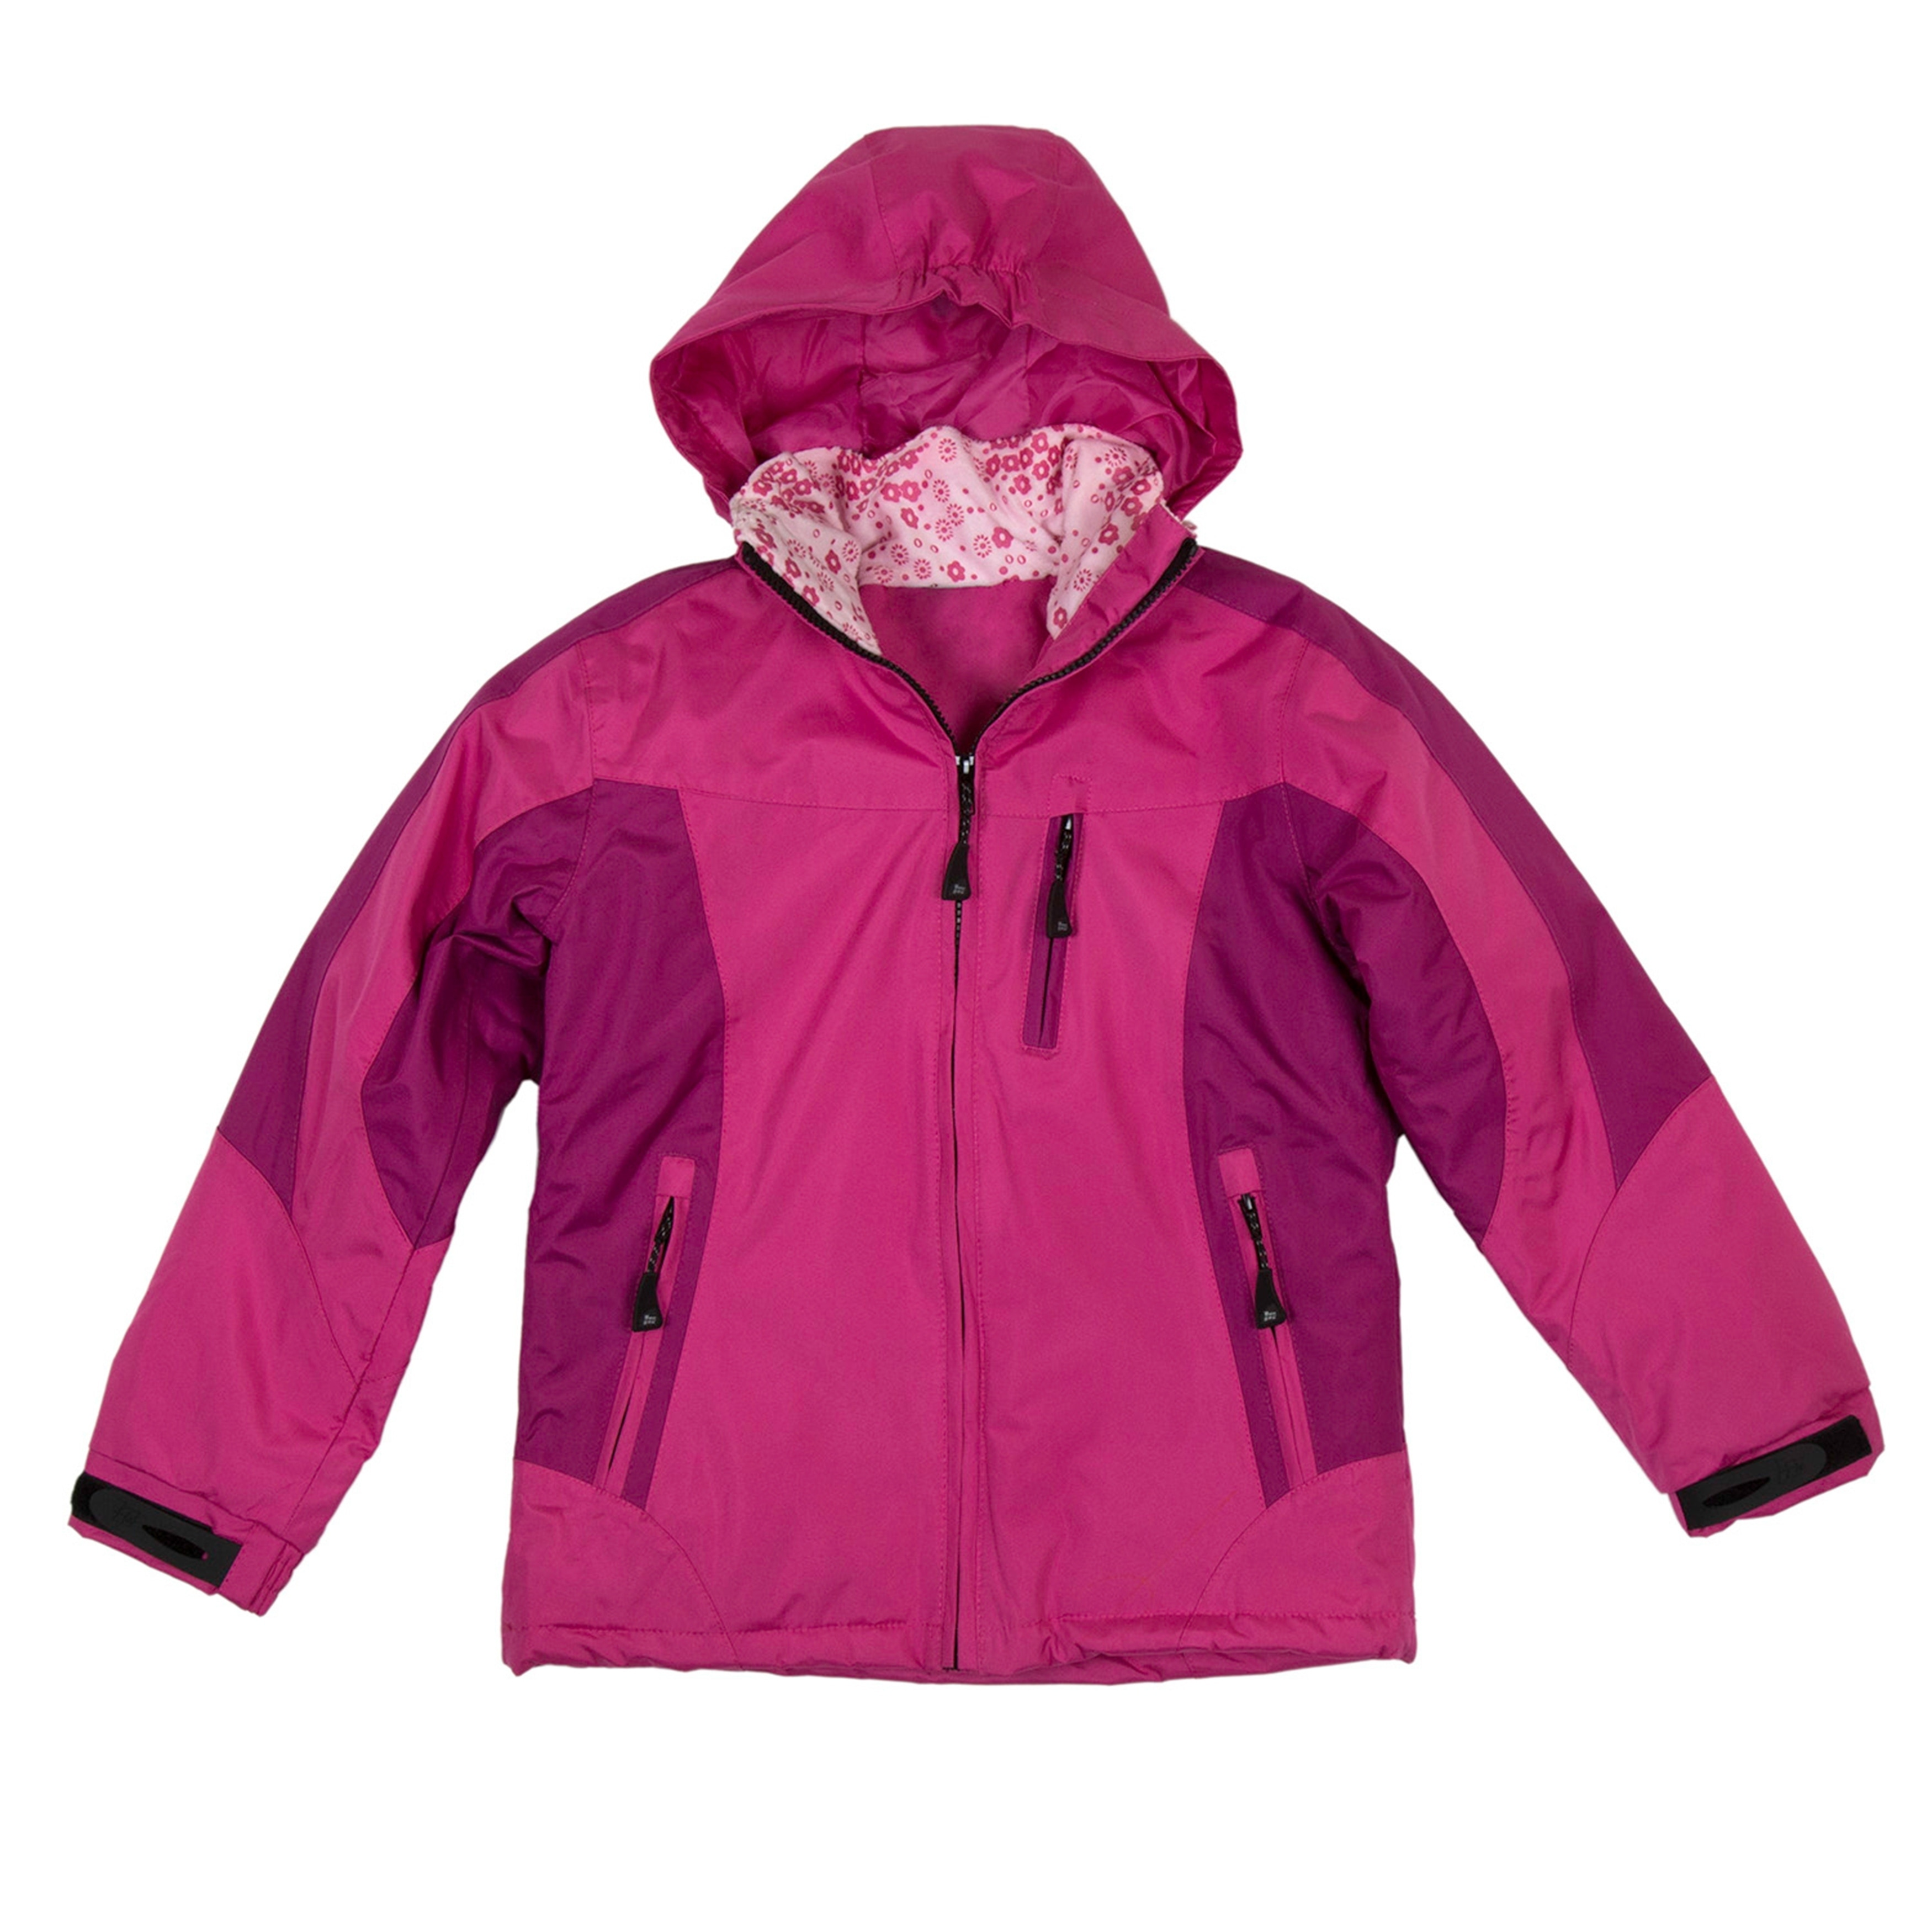 9be8e0c1a Shop Mossi Youth Flurry Girls Jacket - Free Shipping On Orders Over $45 -  Overstock - 23150832